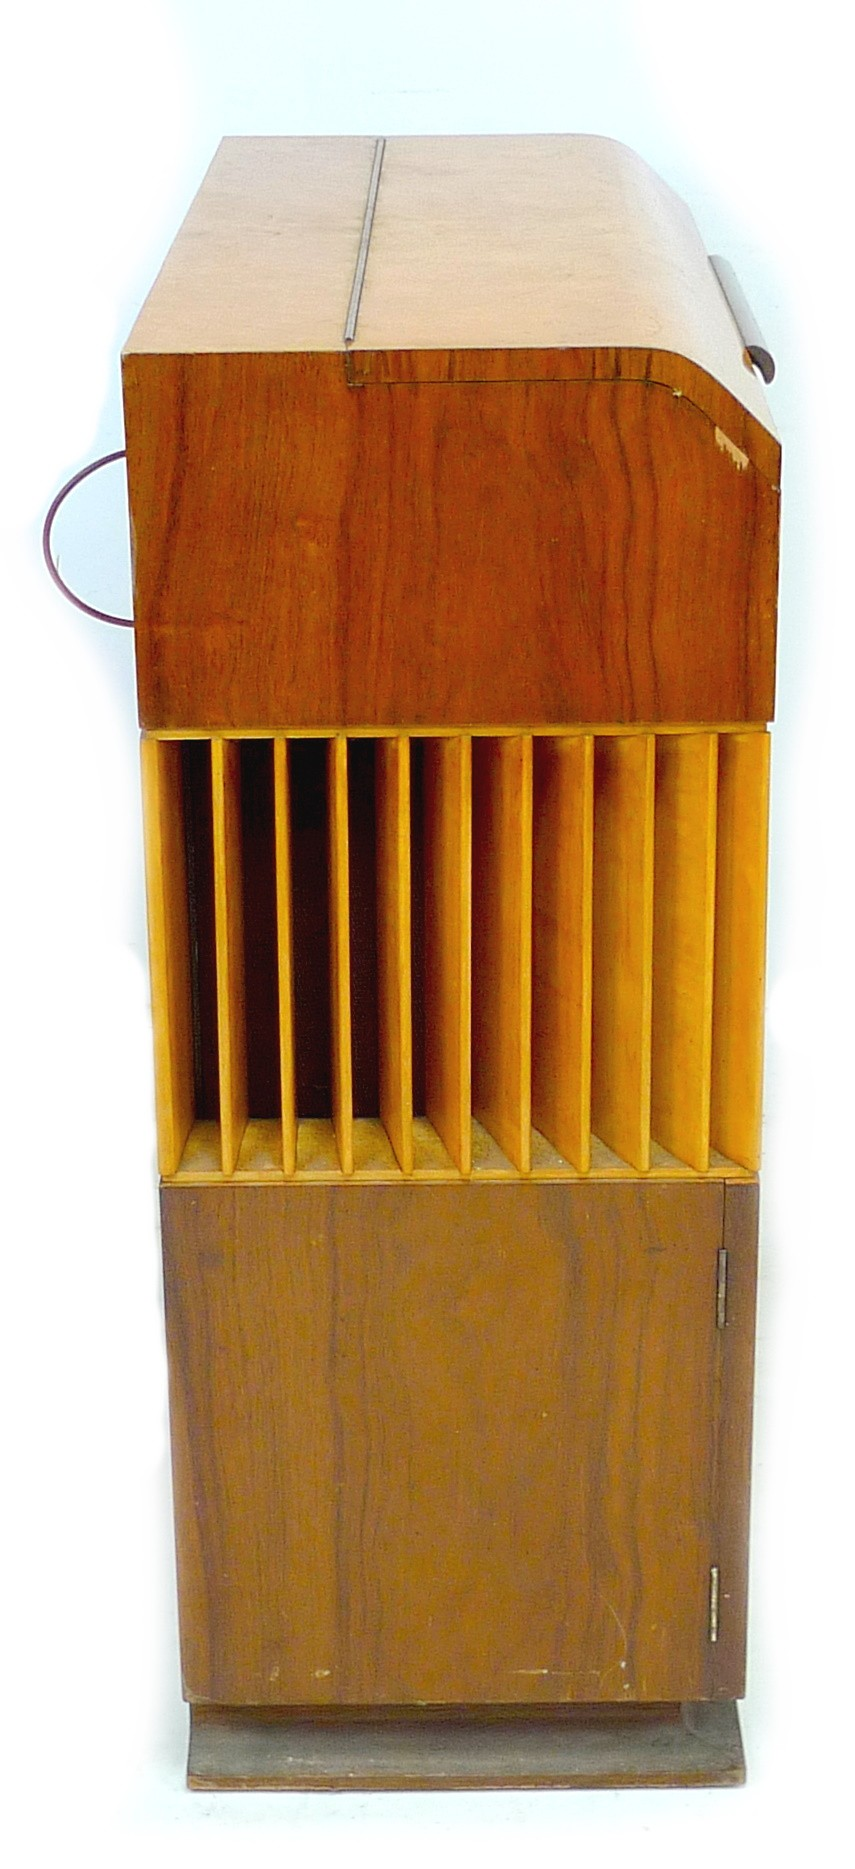 A vintage 'Decola' radiogram, by The Decca Record Company Limited, Rd. Desn. 844055, 'Decola' No. - Image 5 of 9